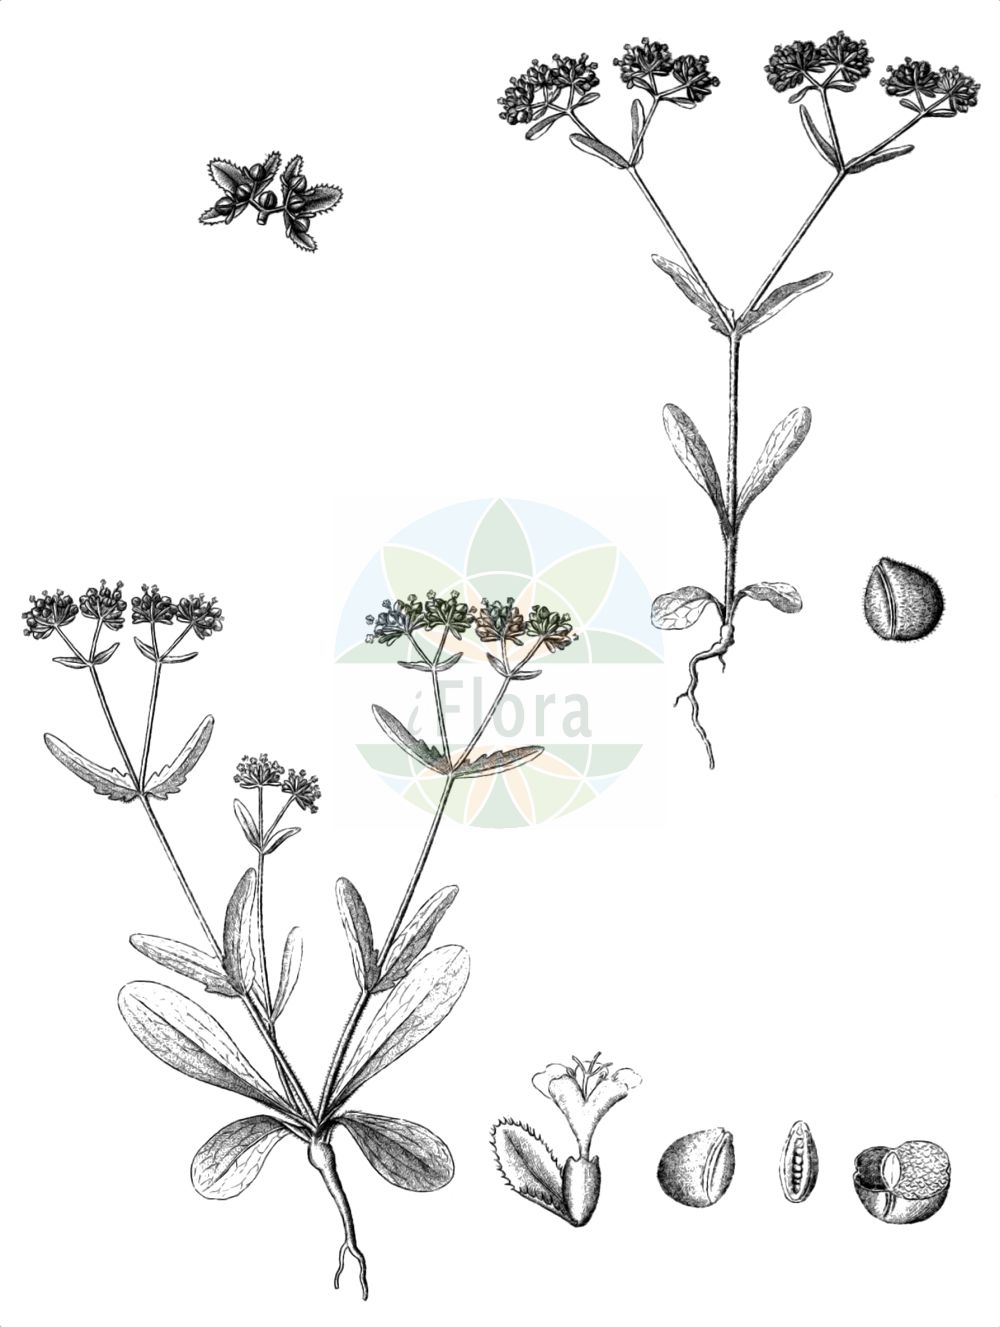 Historische Abbildung von Valerianella locusta (Gewoehnlicher Feldsalat - Common Cornsalad). Das Bild zeigt Blatt, Bluete, Frucht und Same. ---- Historical Drawing of Valerianella locusta (Gewoehnlicher Feldsalat - Common Cornsalad).The image is showing leaf, flower, fruit and seed.(Valerianella locusta,Gewoehnlicher Feldsalat,Common Cornsalad,Valeriana locusta,Valerianella locusta,Valerianella olitoria,Gewoehnlicher Feldsalat,Ackersalat,Echter Feldsalat,Rapunzel,Sonnenwirbele,Common Cornsalad,Lewiston Cornsalad,European Corn Salad,Cornsalad,Lamb's Lettuce,Valerianella,Rapunzel,Cornsalad,Caprifoliaceae,Geissblattgewaechse,Honeysuckle family,Blatt,Bluete,Frucht,Same,leaf,flower,fruit,seed,Reichenbach (1823-1832))